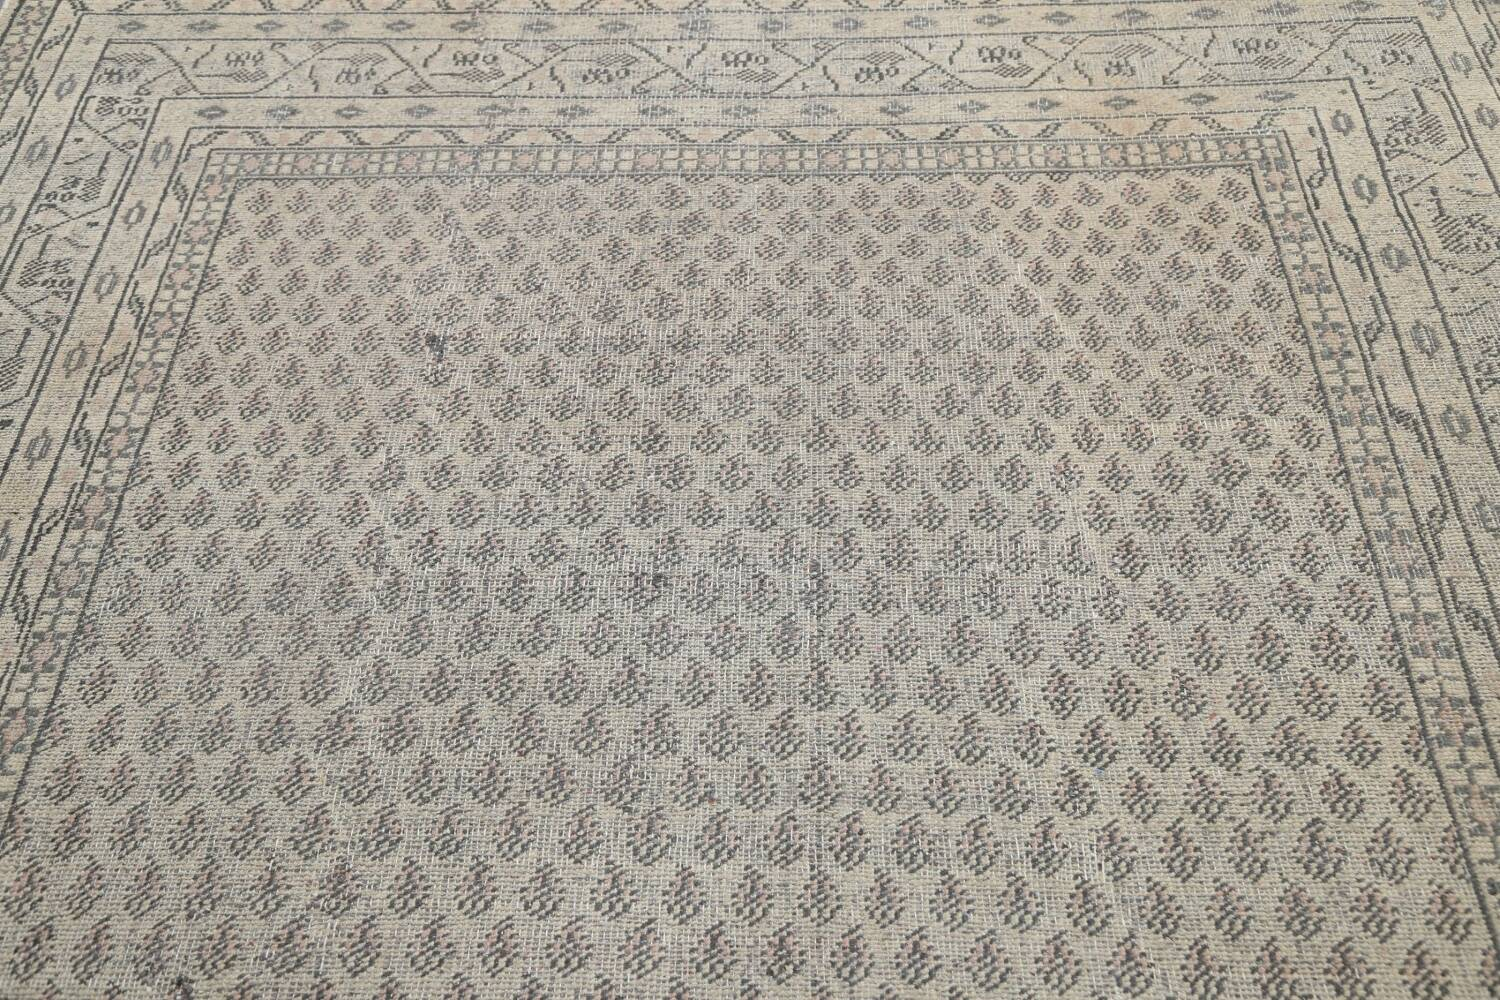 Muted Distressed Botemir Persian Area Rug 7x10 image 11